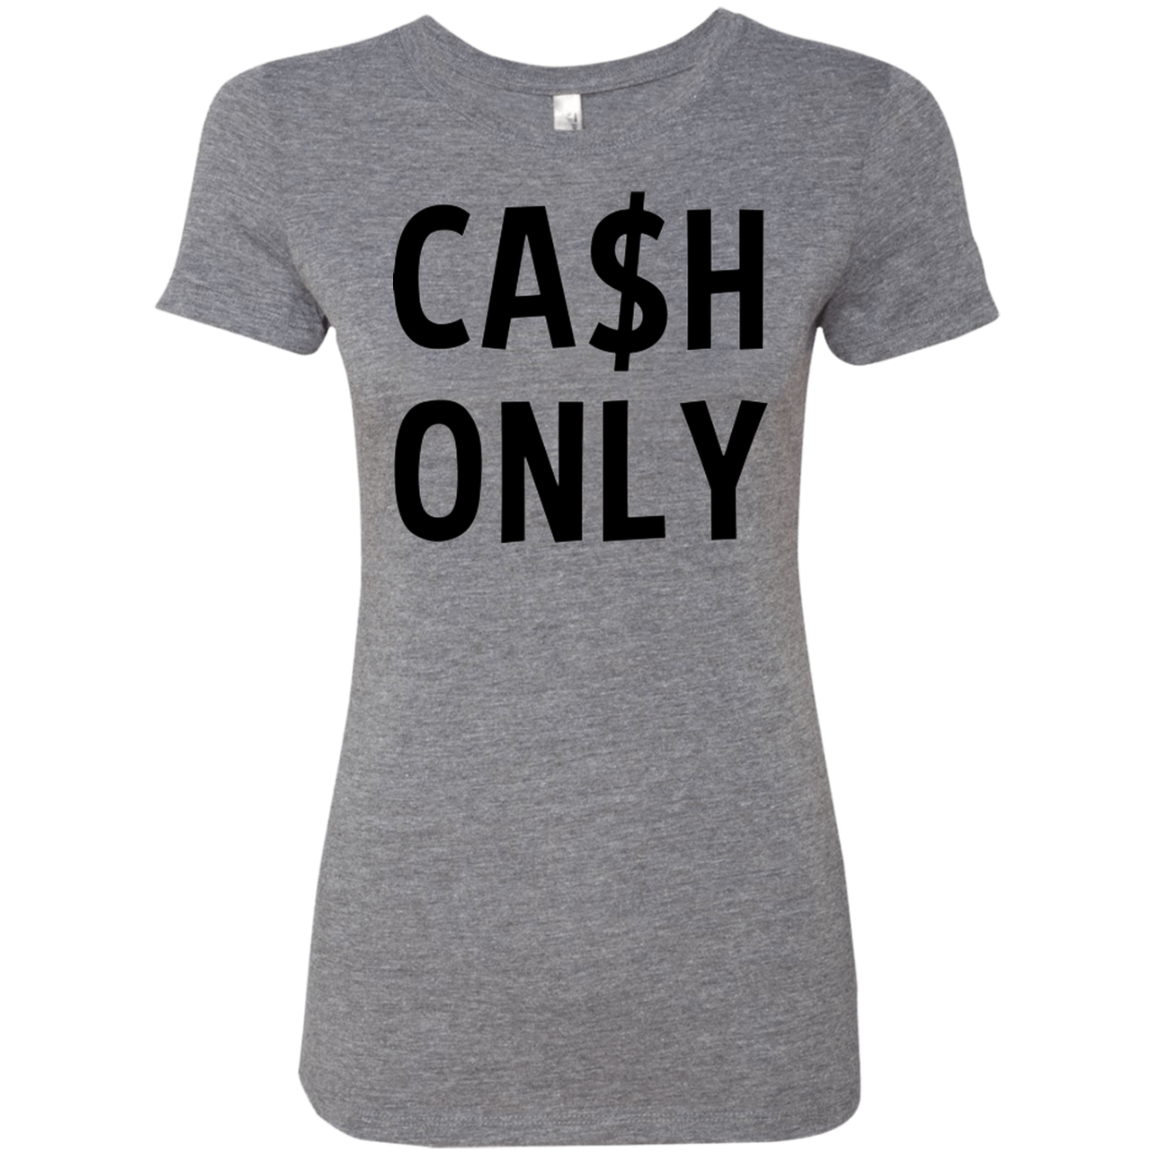 Cash Only Women's Classic Tee - Trendy Tees